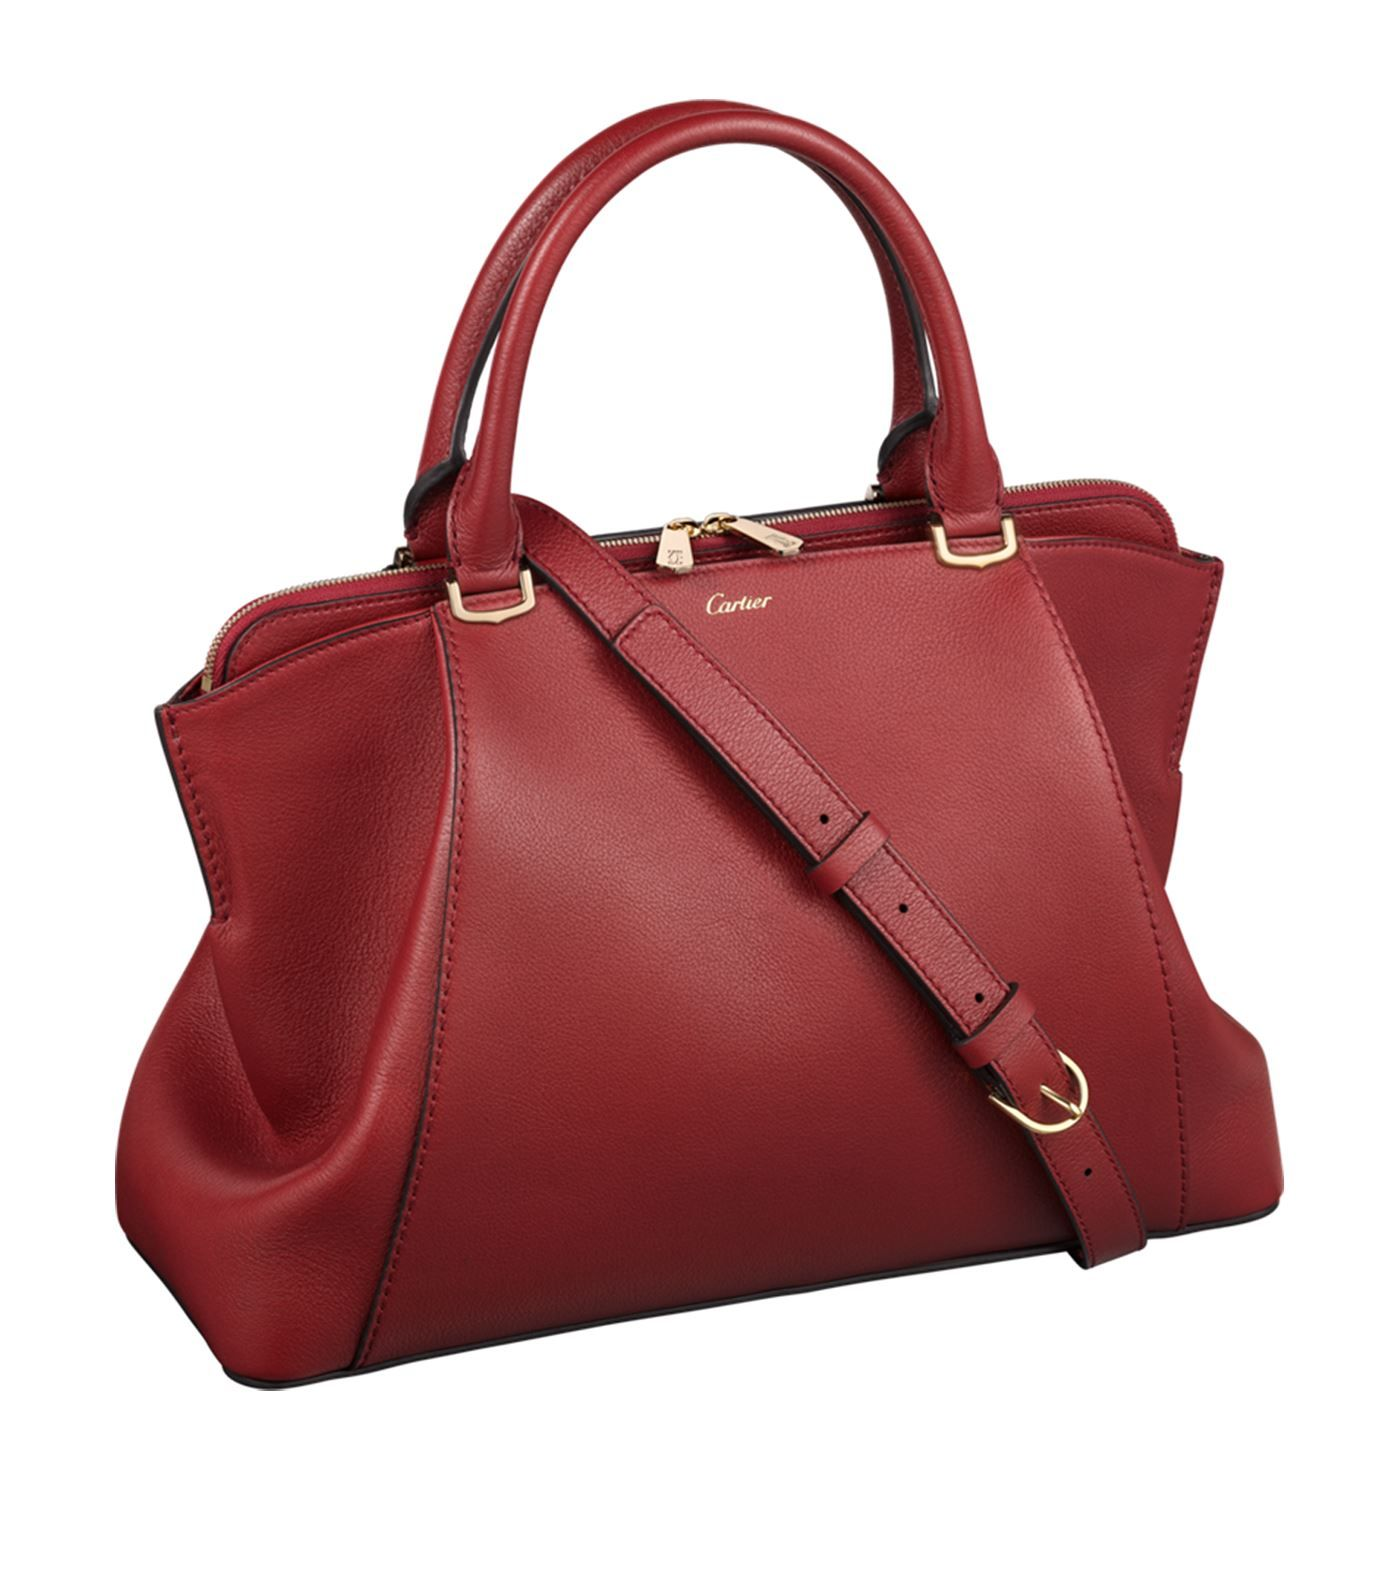 Cartier Bags In 2019 Leather Purses